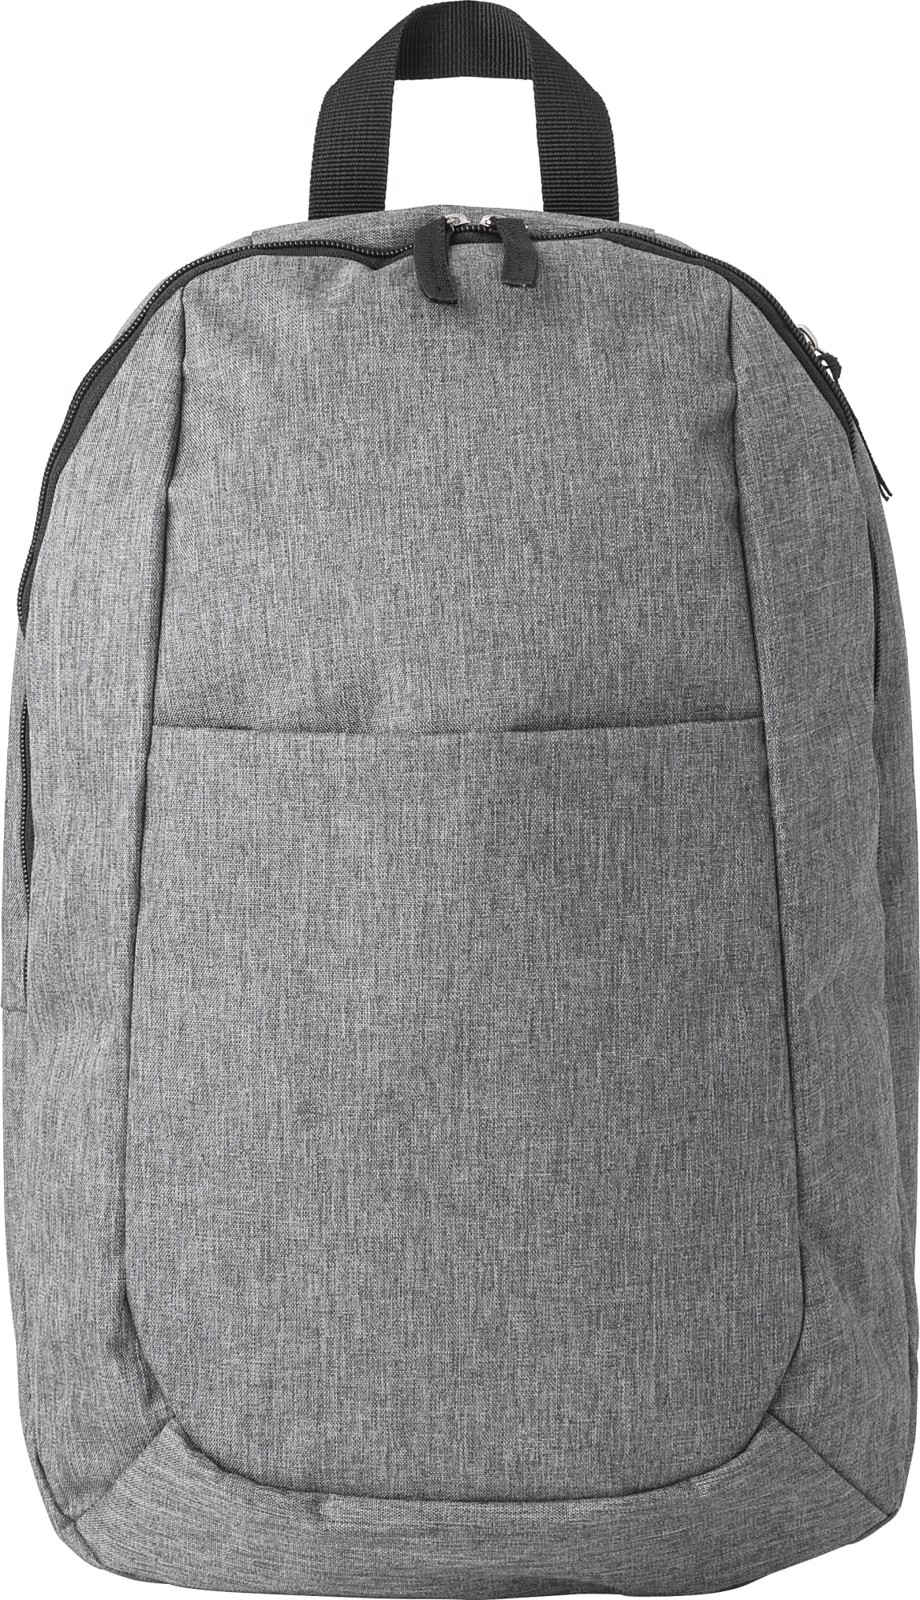 Polyester (300D) backpack - Grey